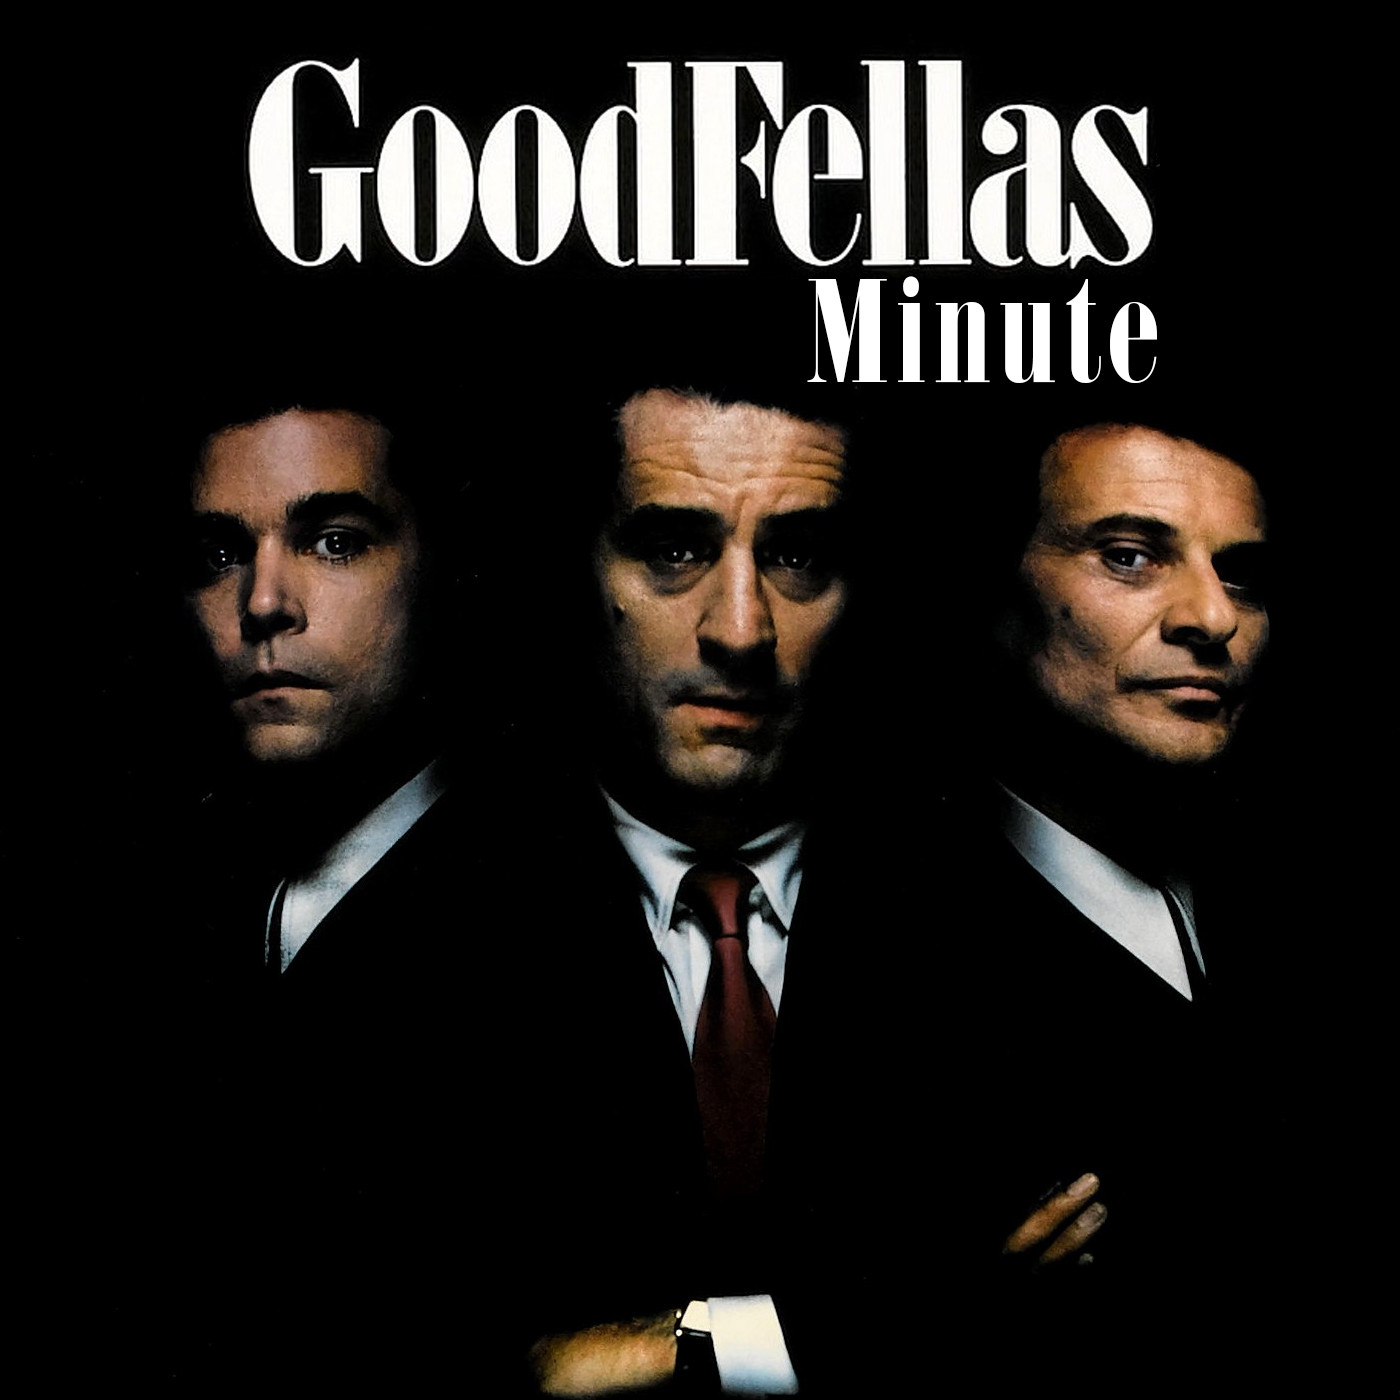 Goodfellas Minute